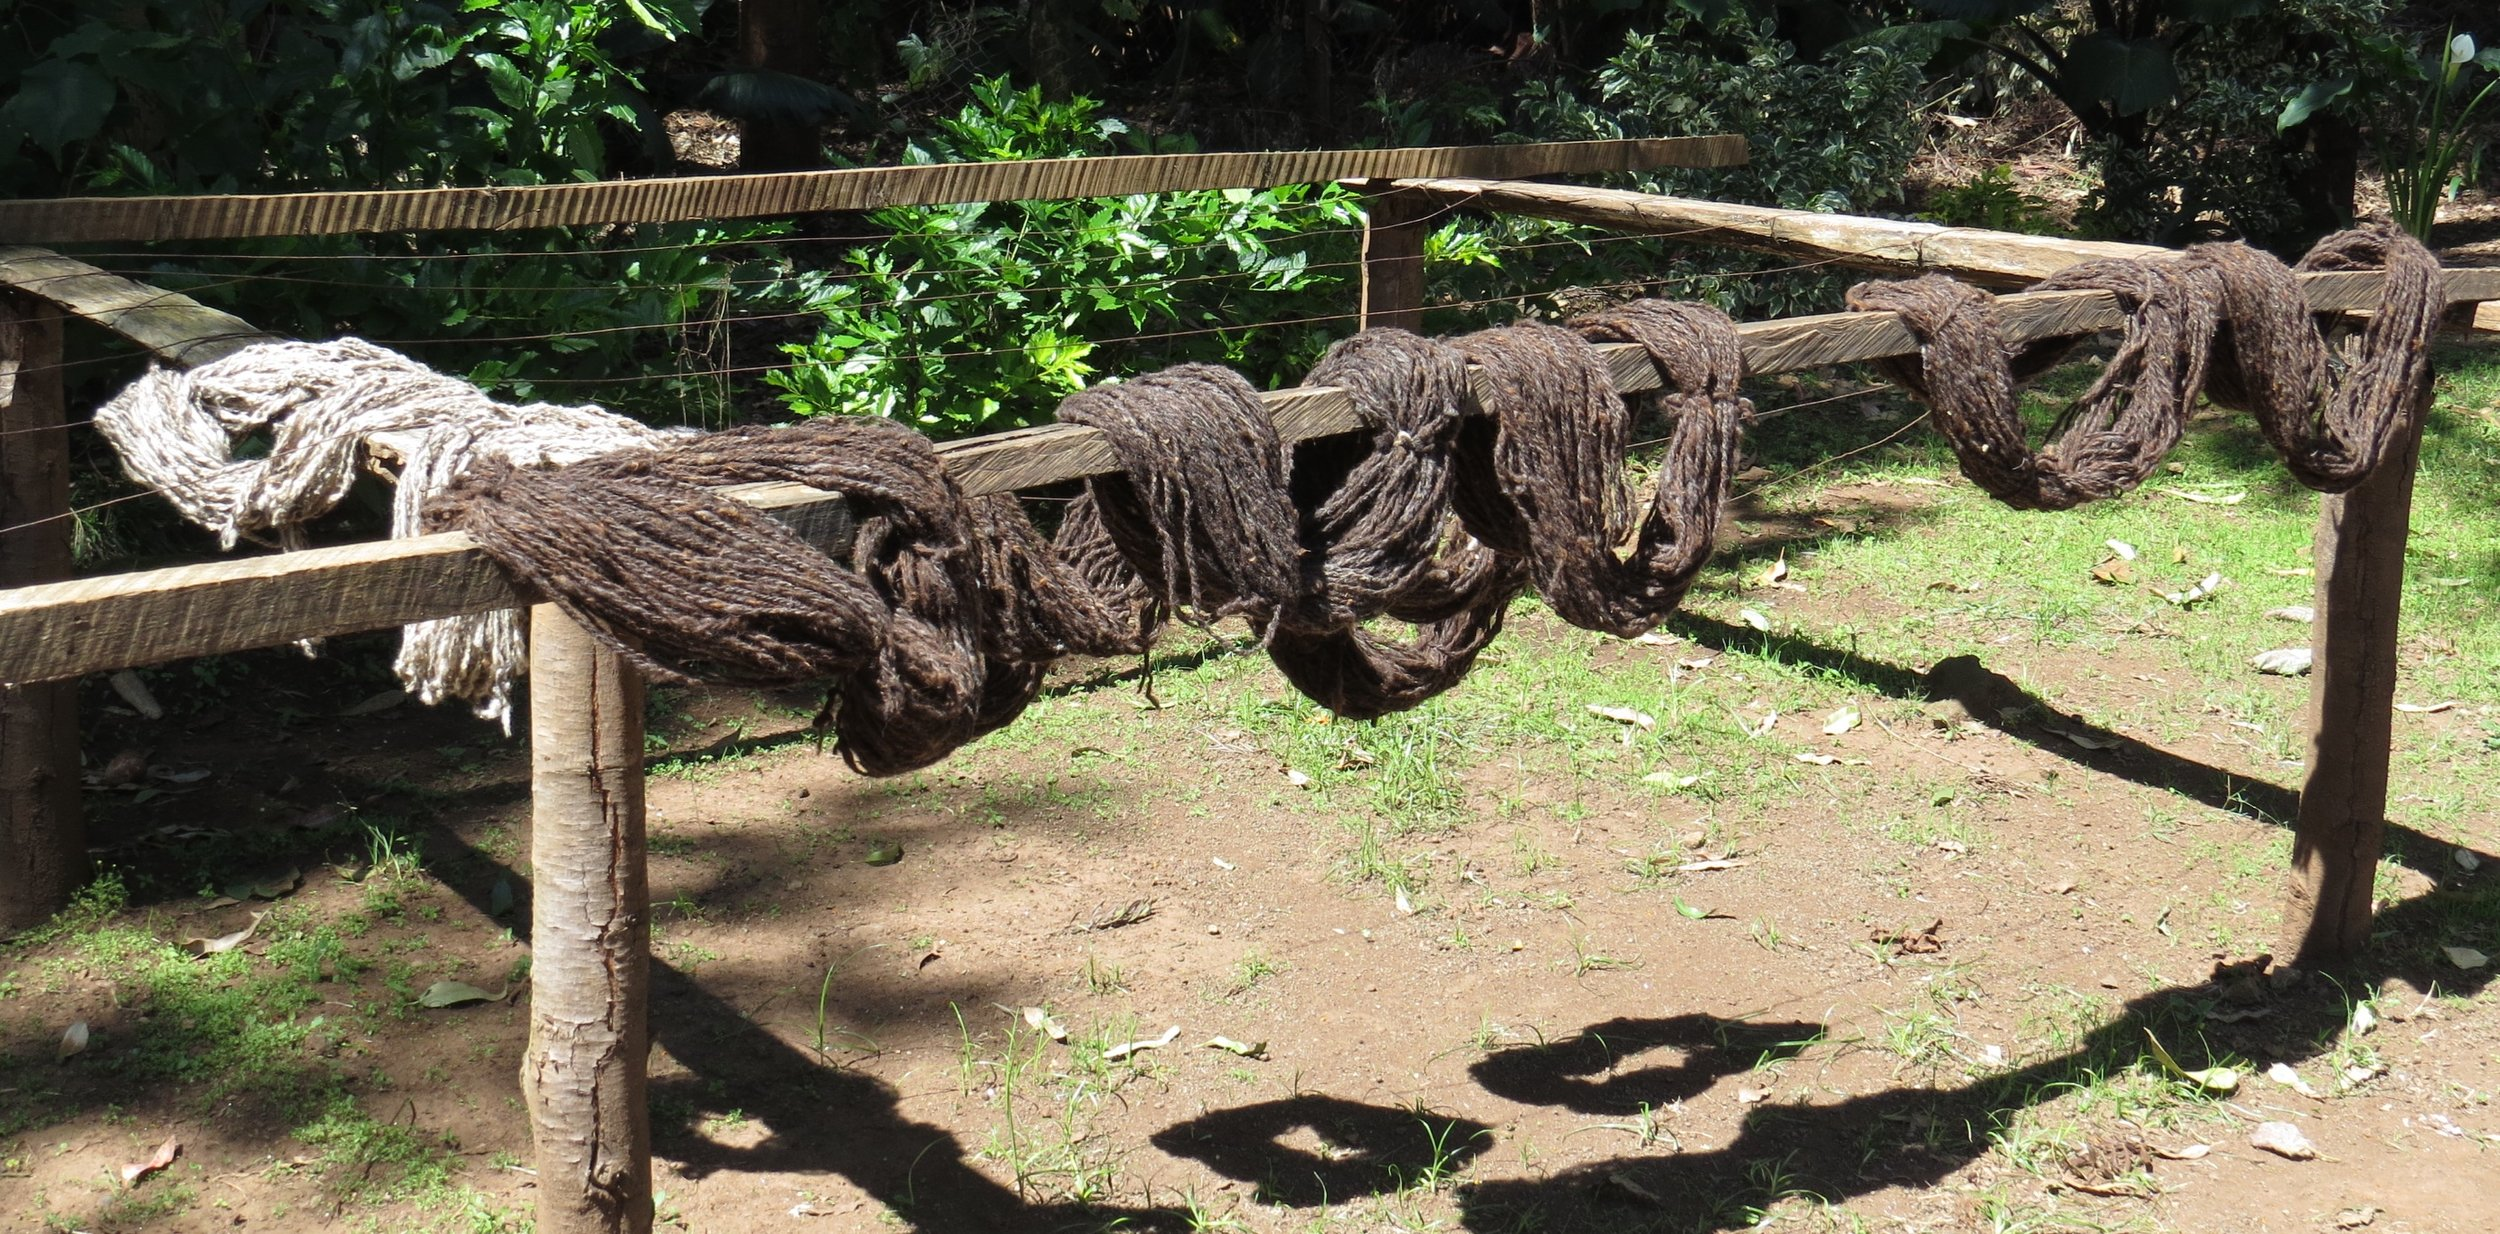 Yarn, spun, washed and out to dry